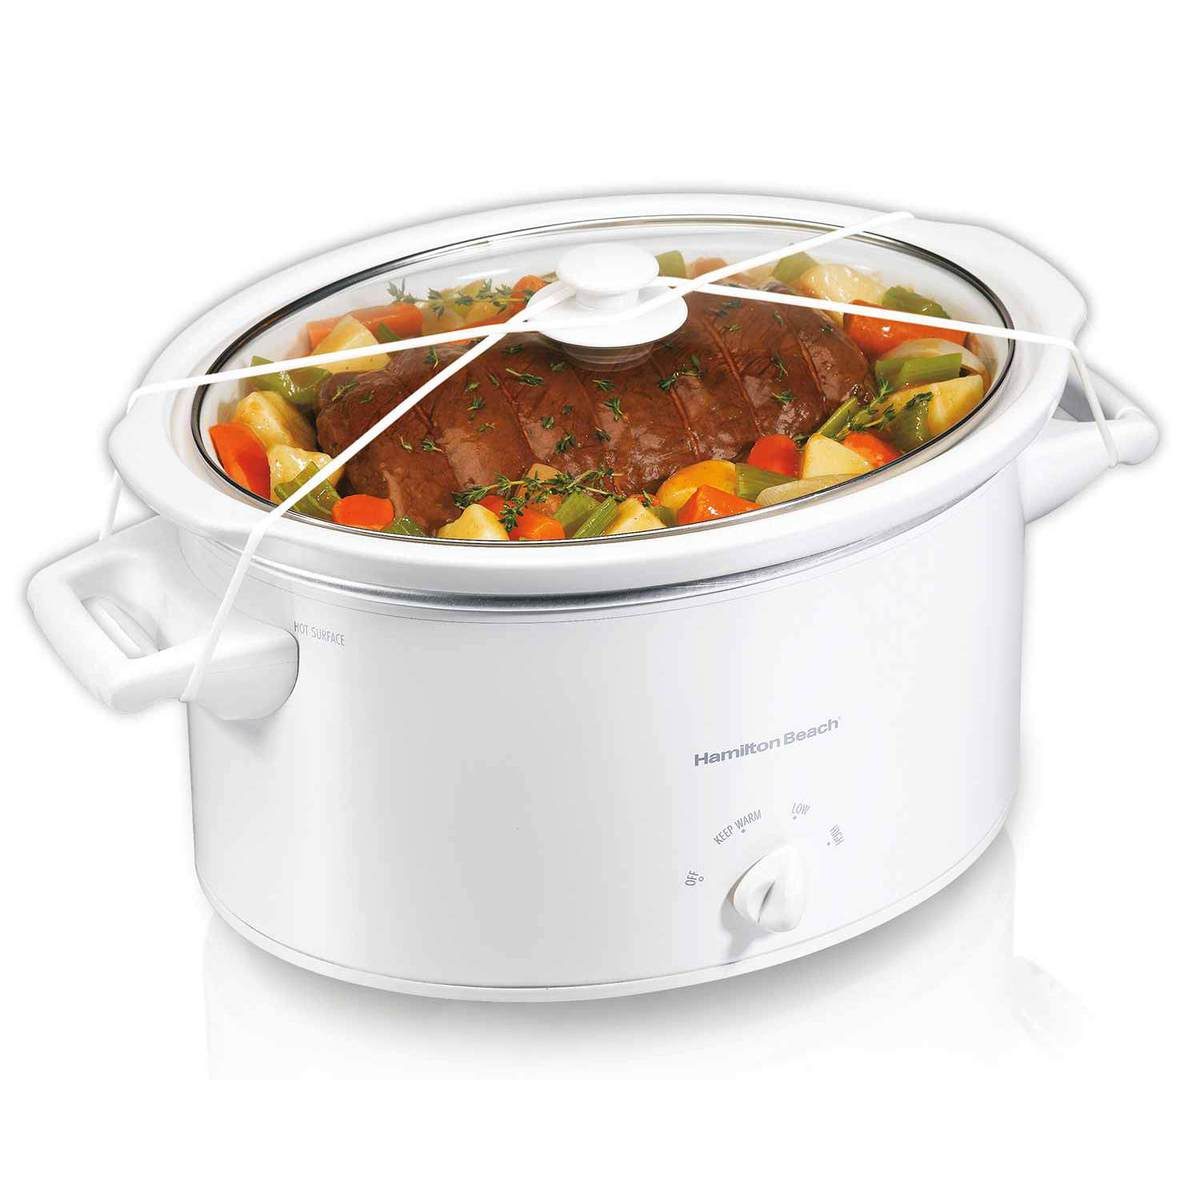 8 Quart Slow Cooker (33181)